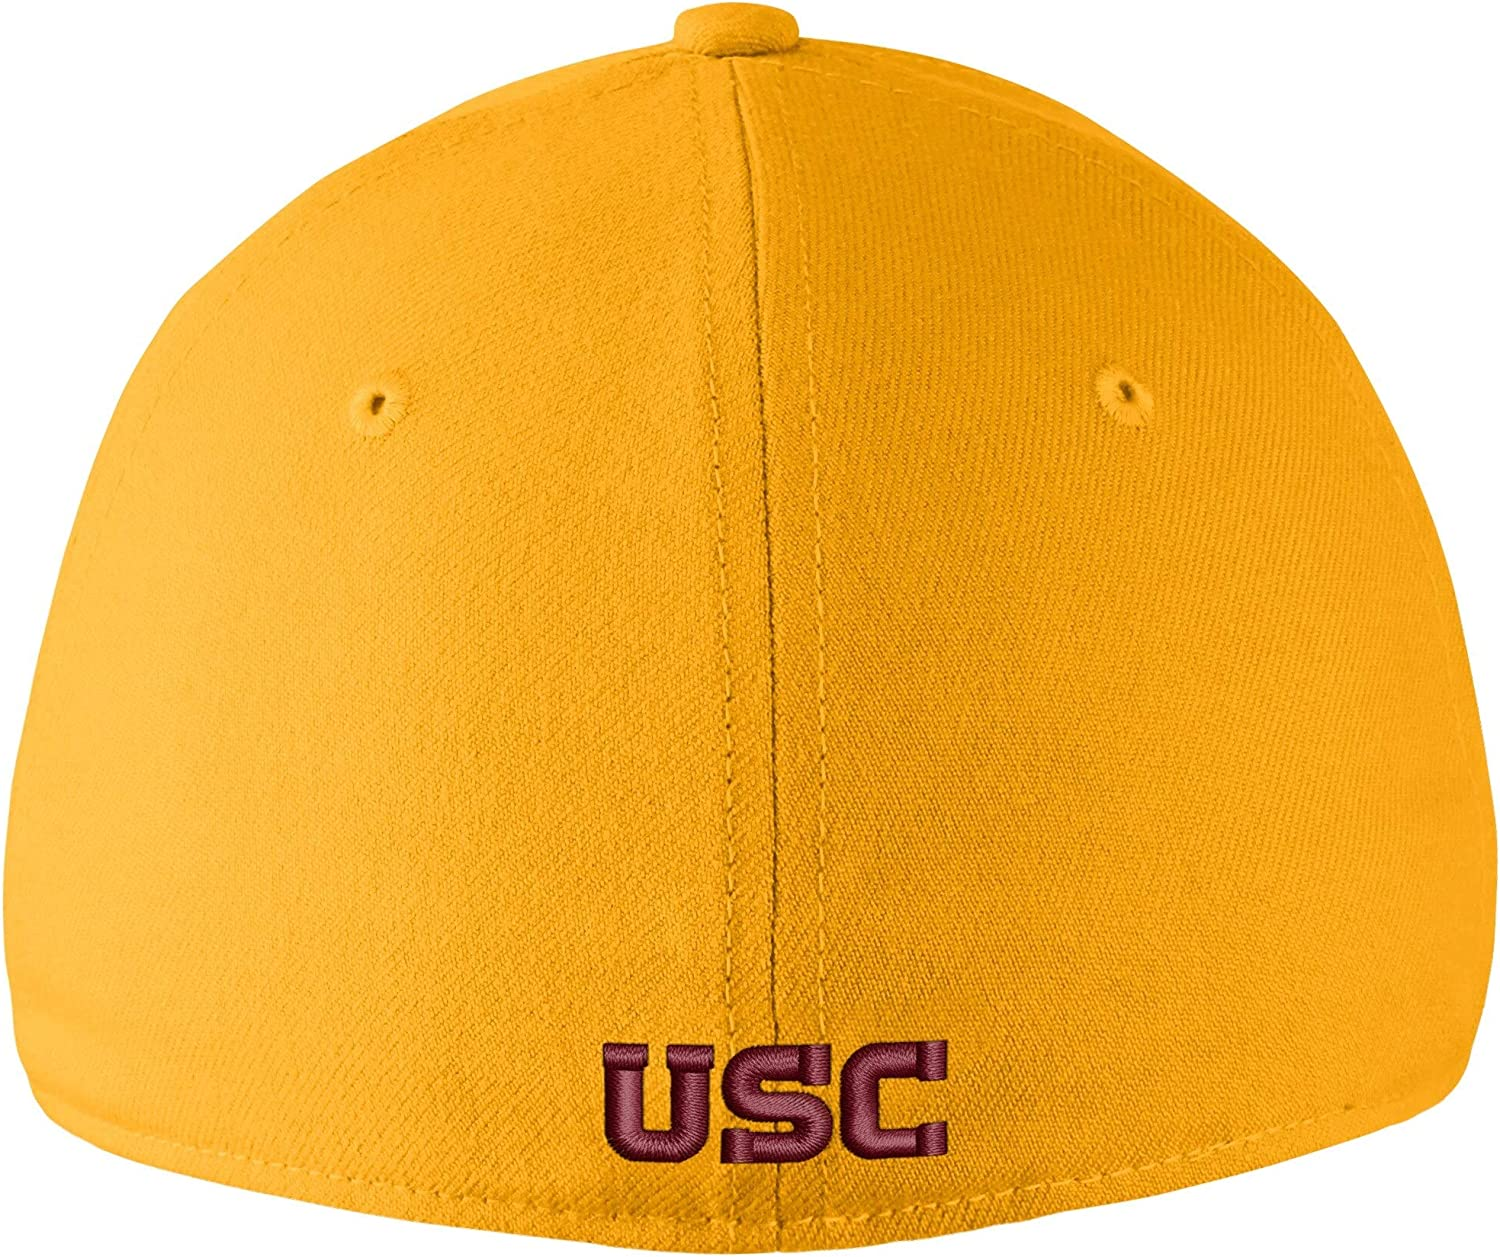 Gold Nike USC Trojans Swoosh Performance Flex Hat